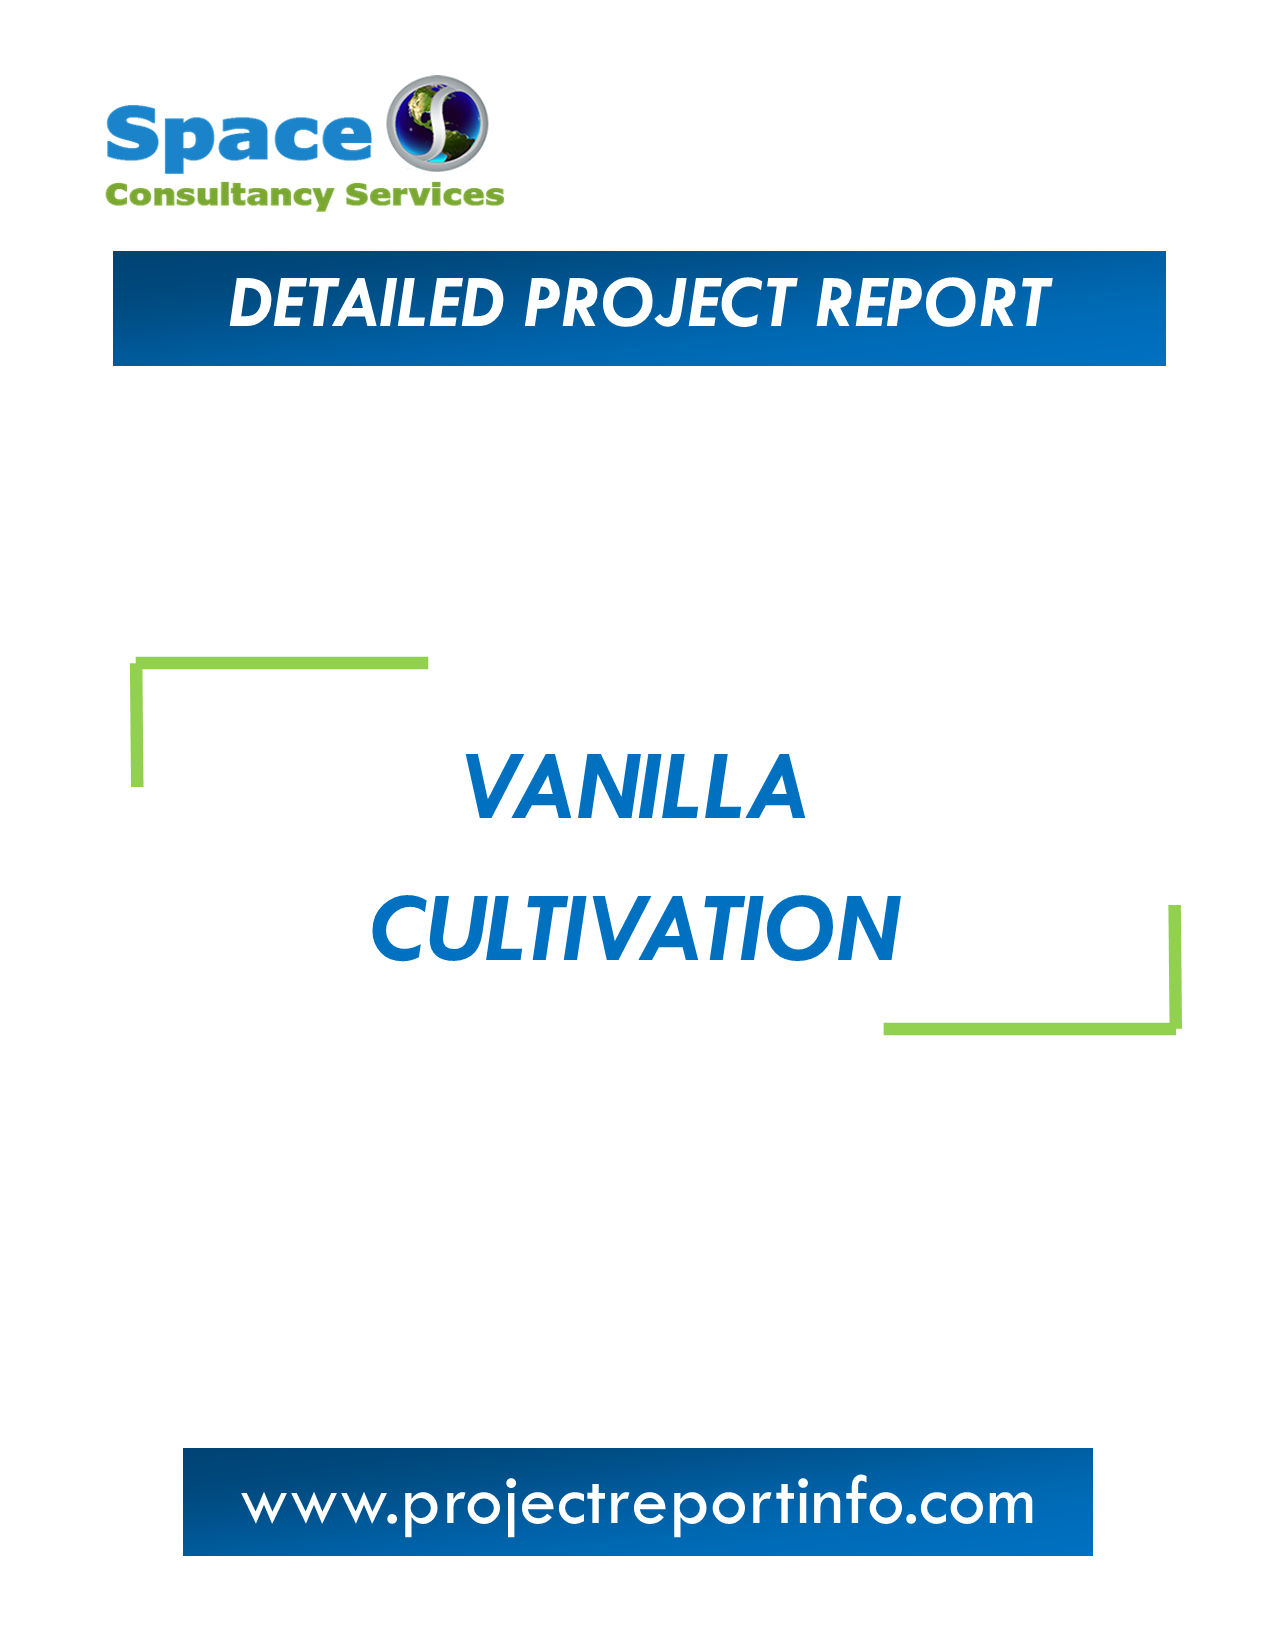 Project Report on Vanilla Cultivation